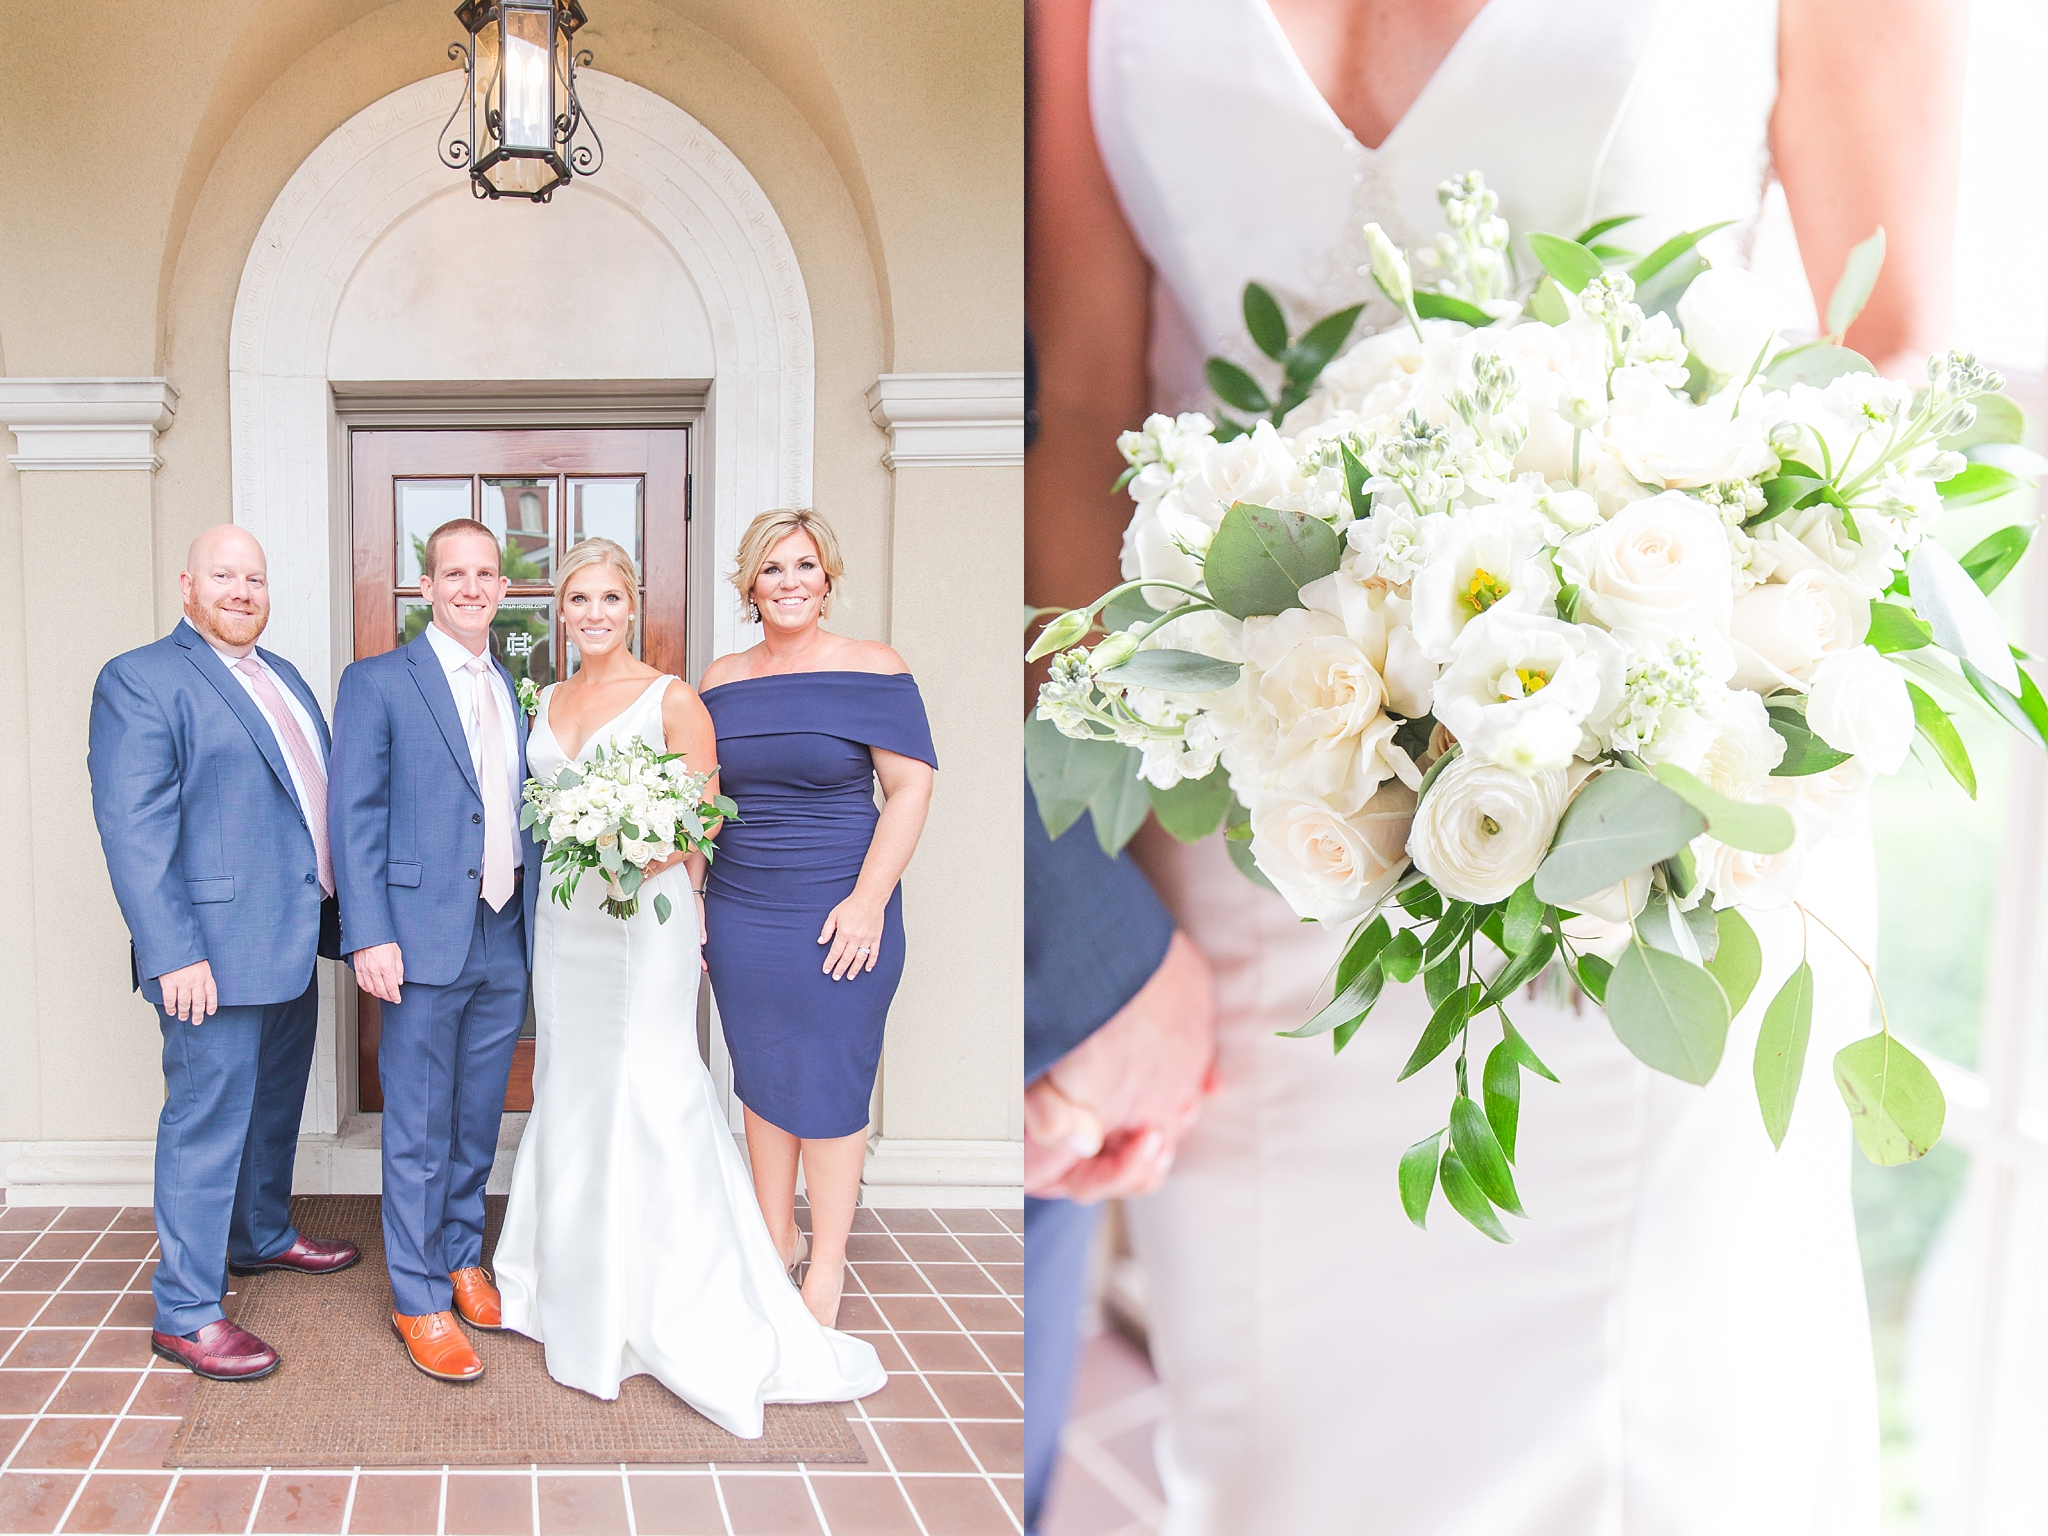 casually-chic-modern-wedding-photos-at-the-chapman-house-in-rochester-michigan-by-courtney-carolyn-photography_0022.jpg